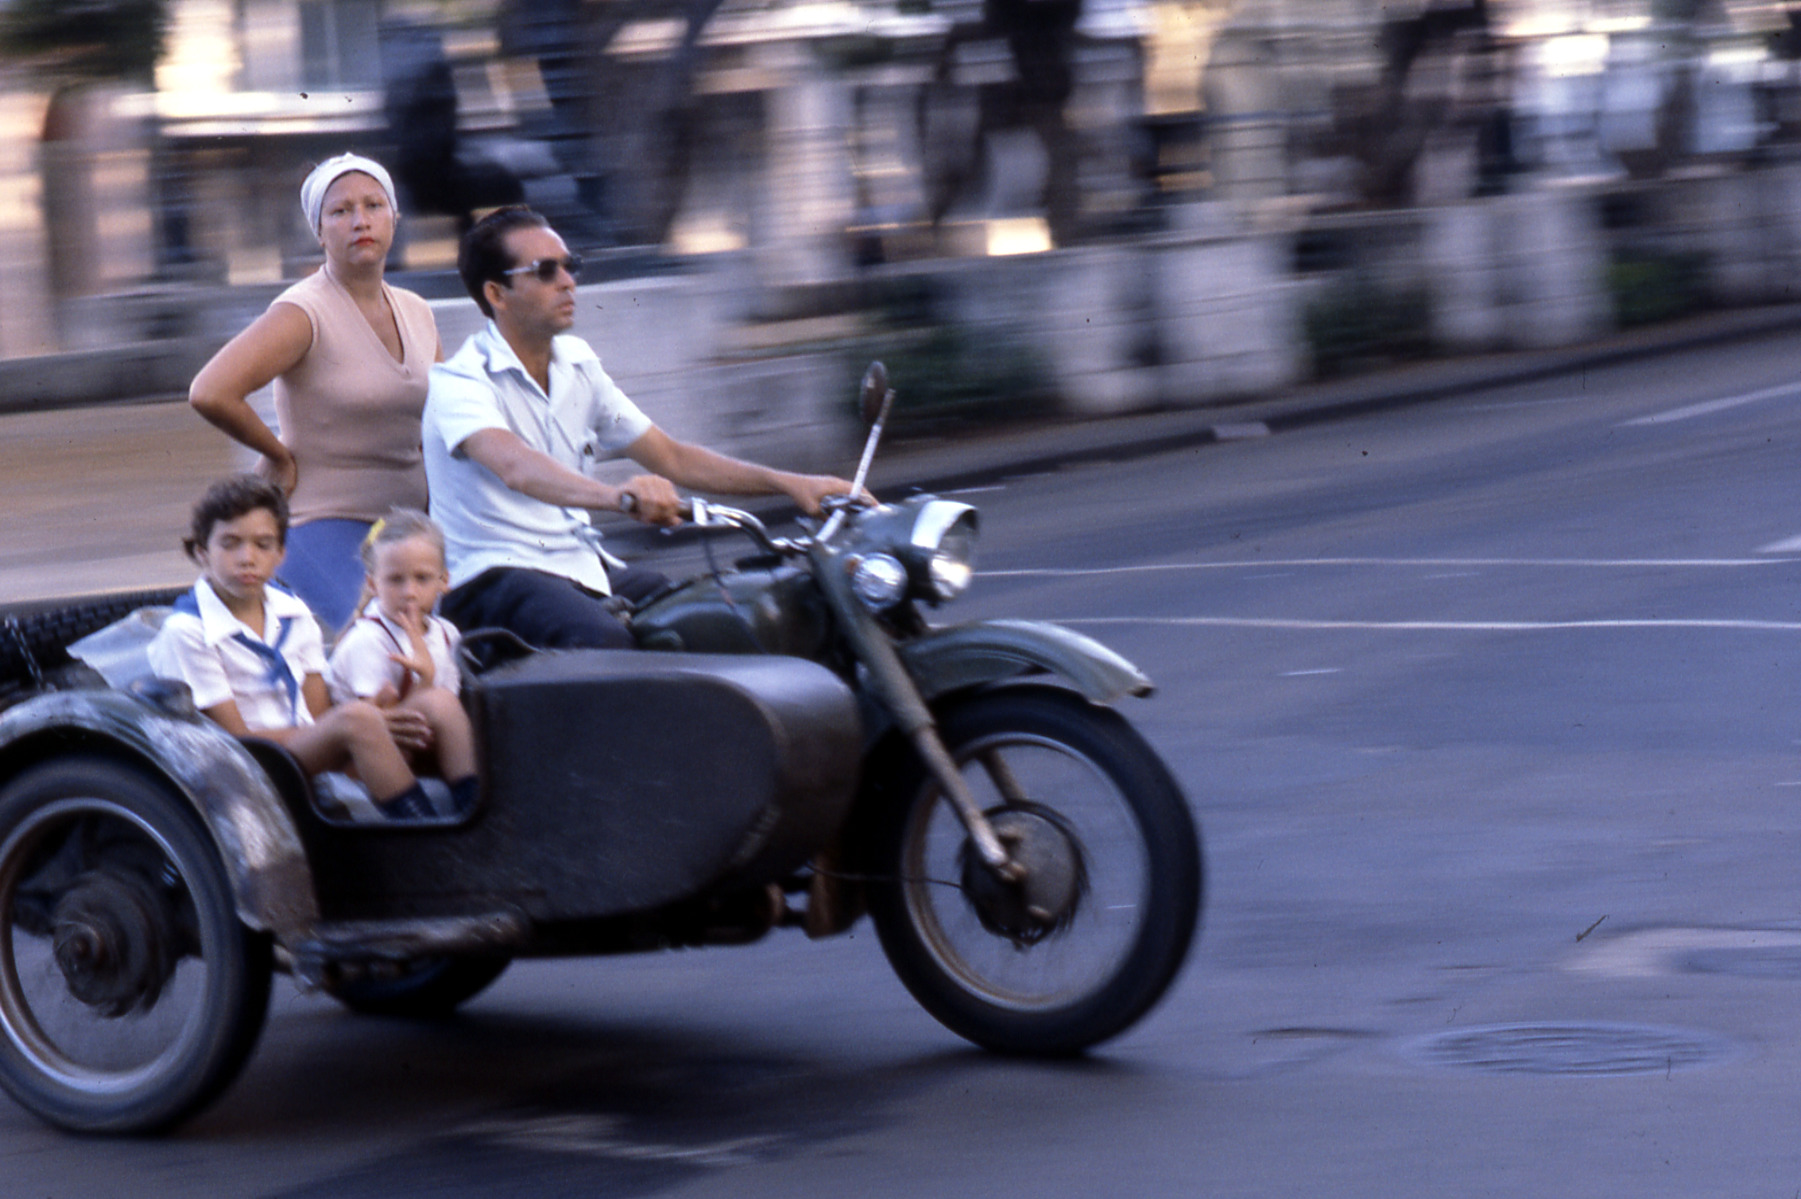 Cuban family on motorcycle